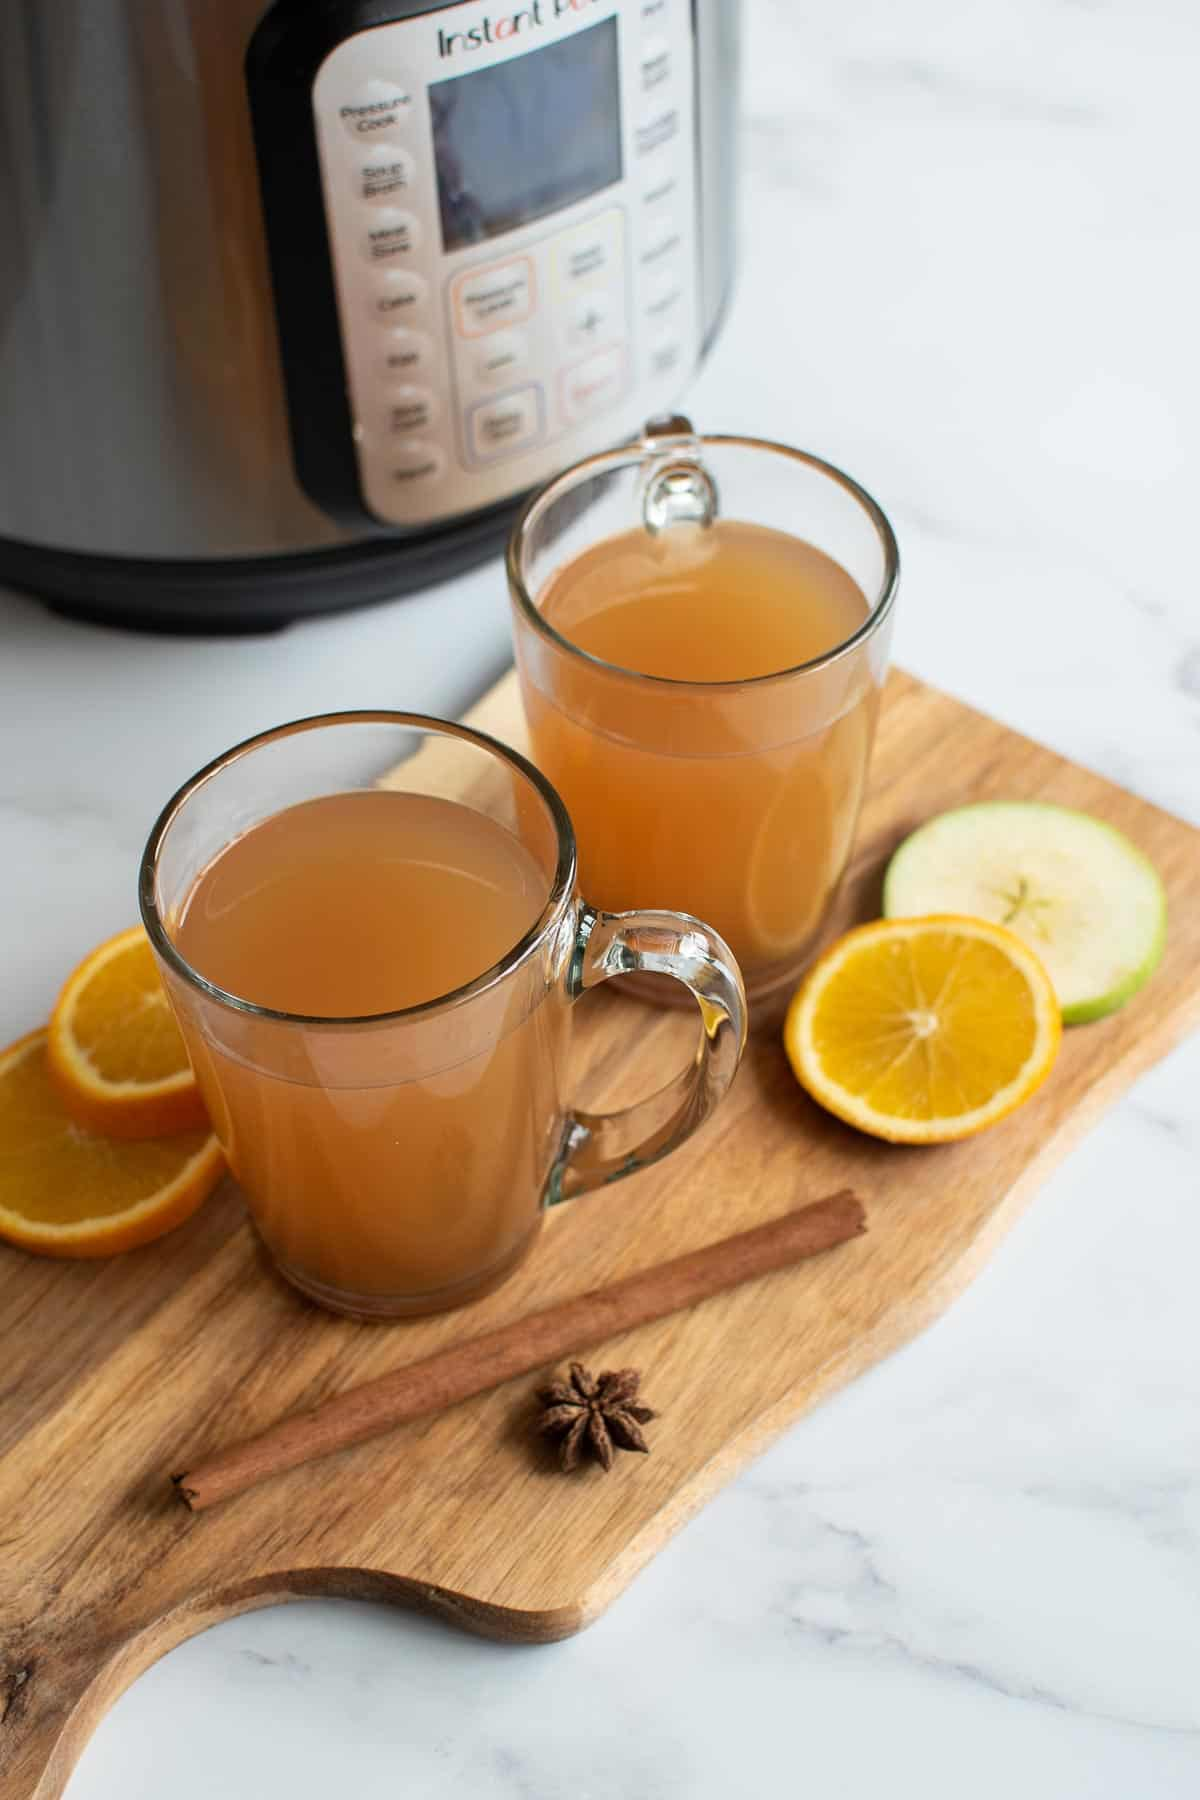 Two glasses of hot mulled cider with cinnamon, star anise and oranges.